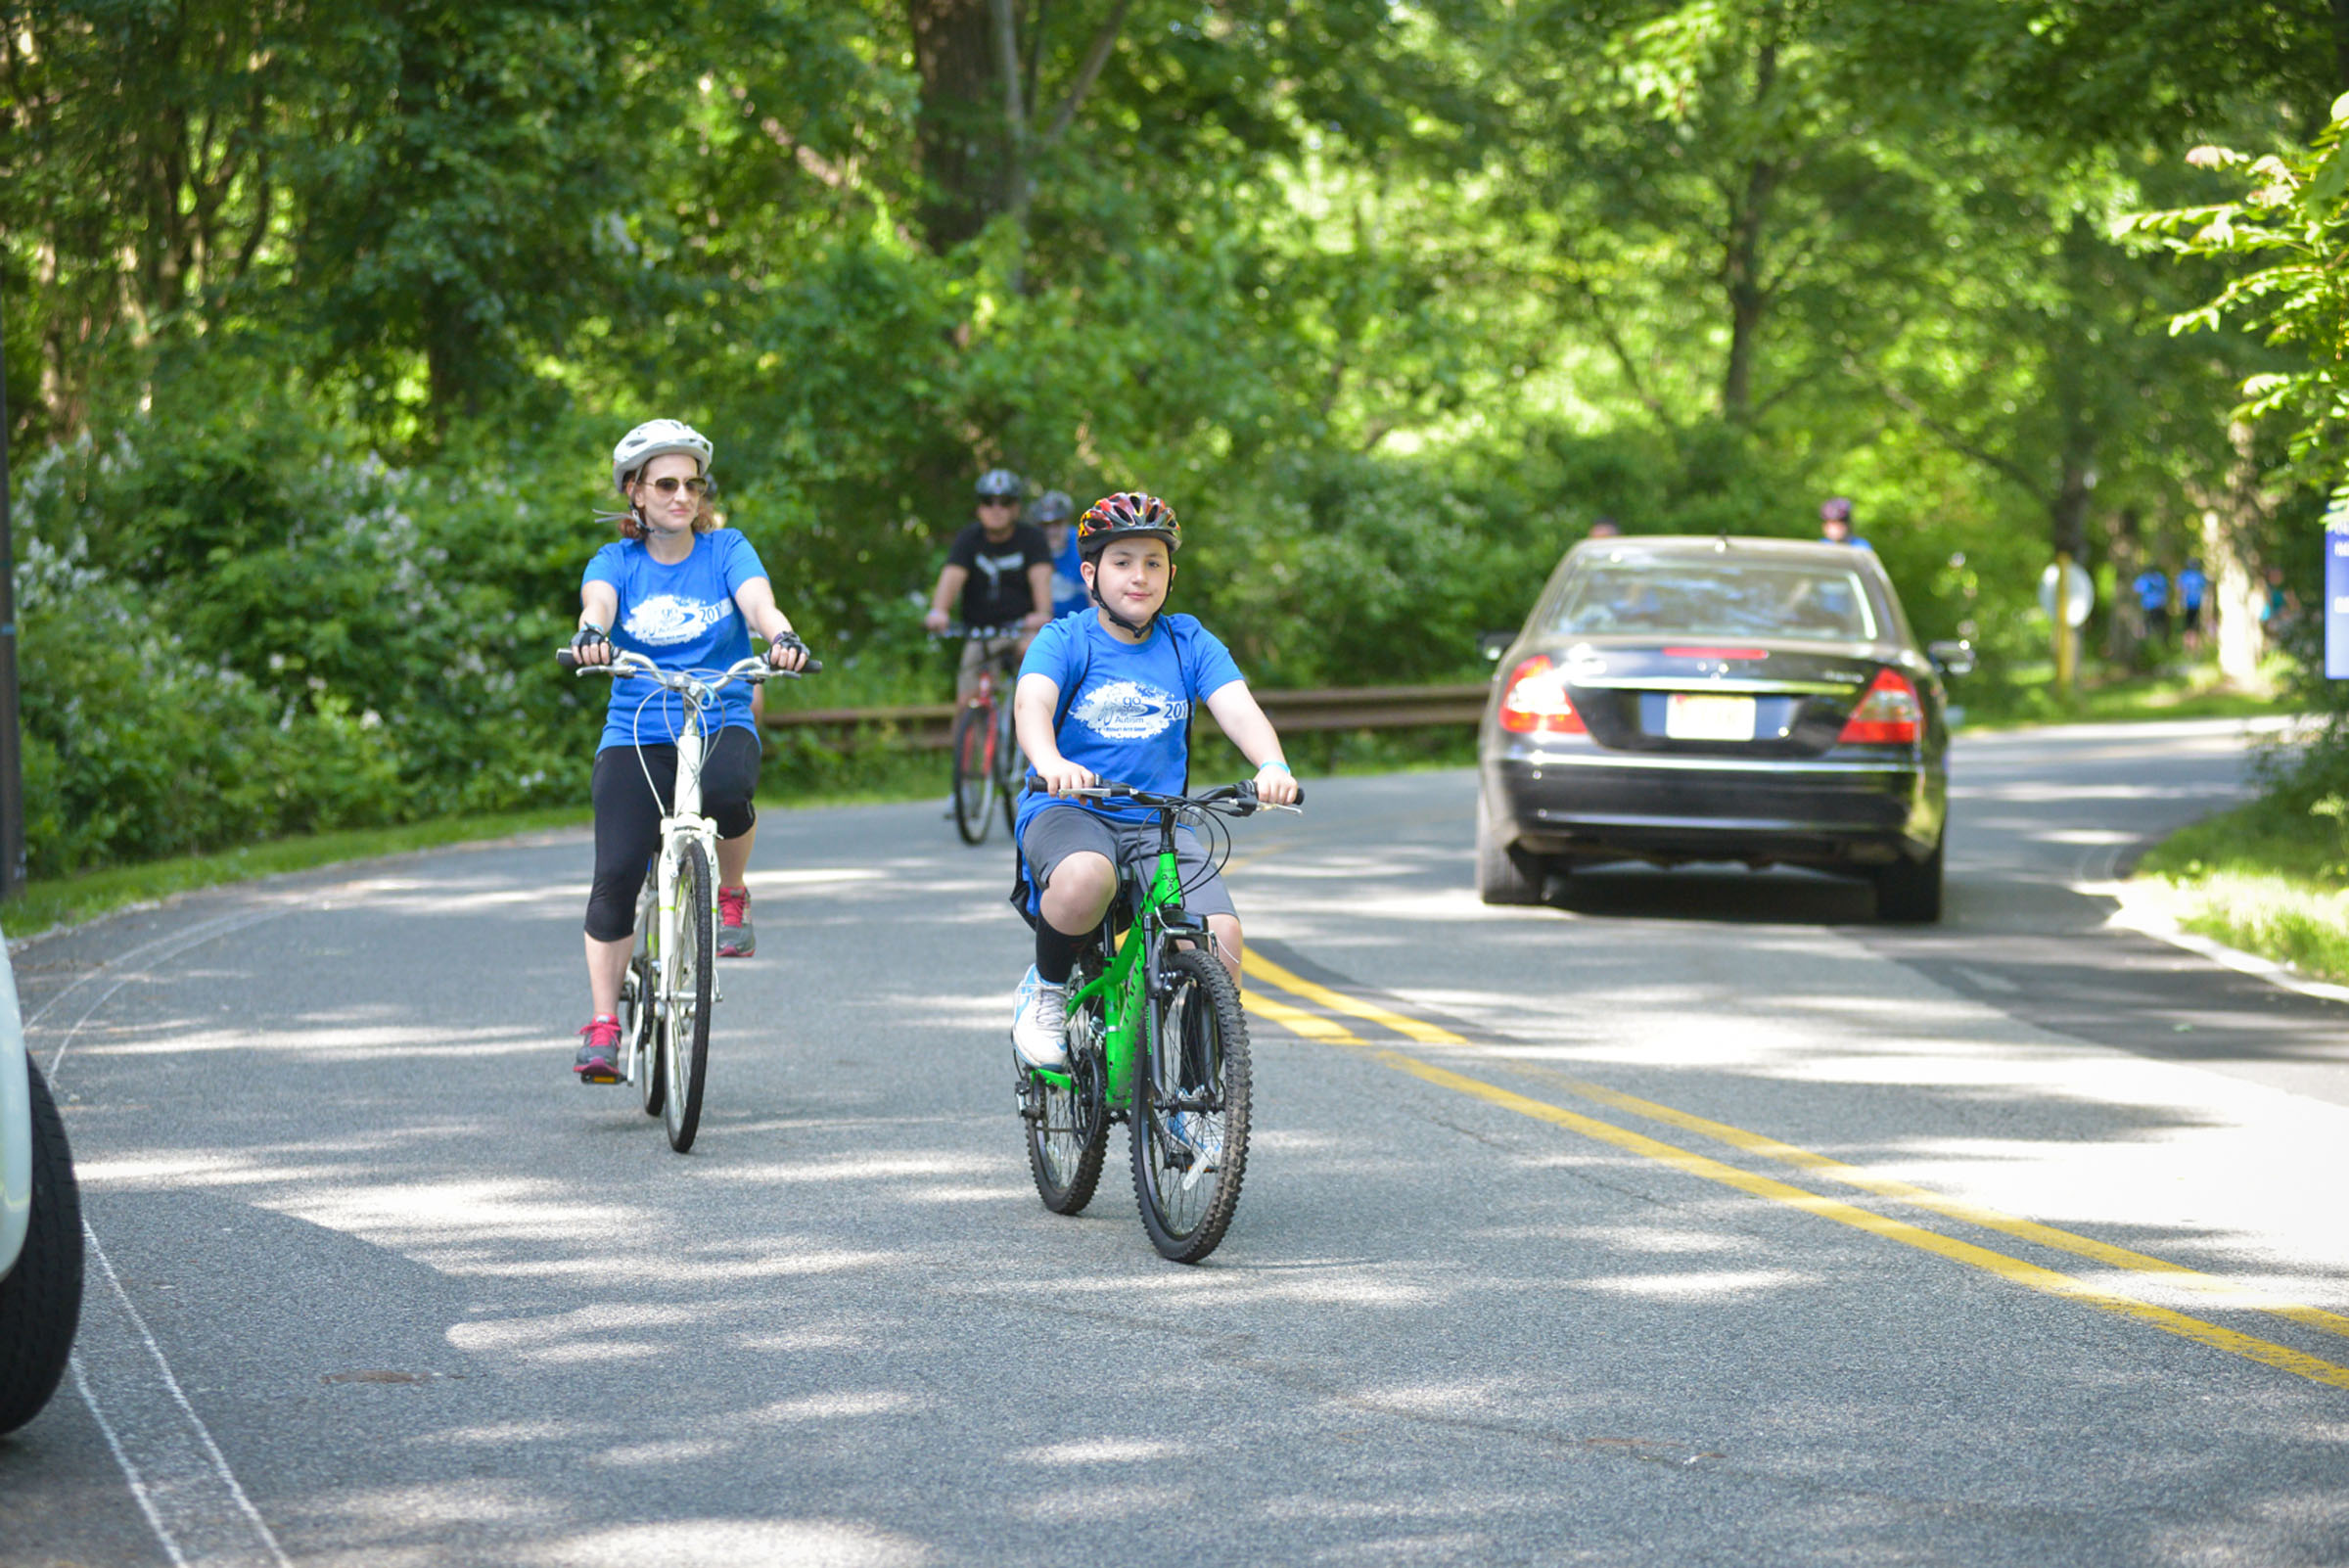 2017-06-04 GTD4A Charity Bike Ride - BCC - Paramus NJ-2023.jpg